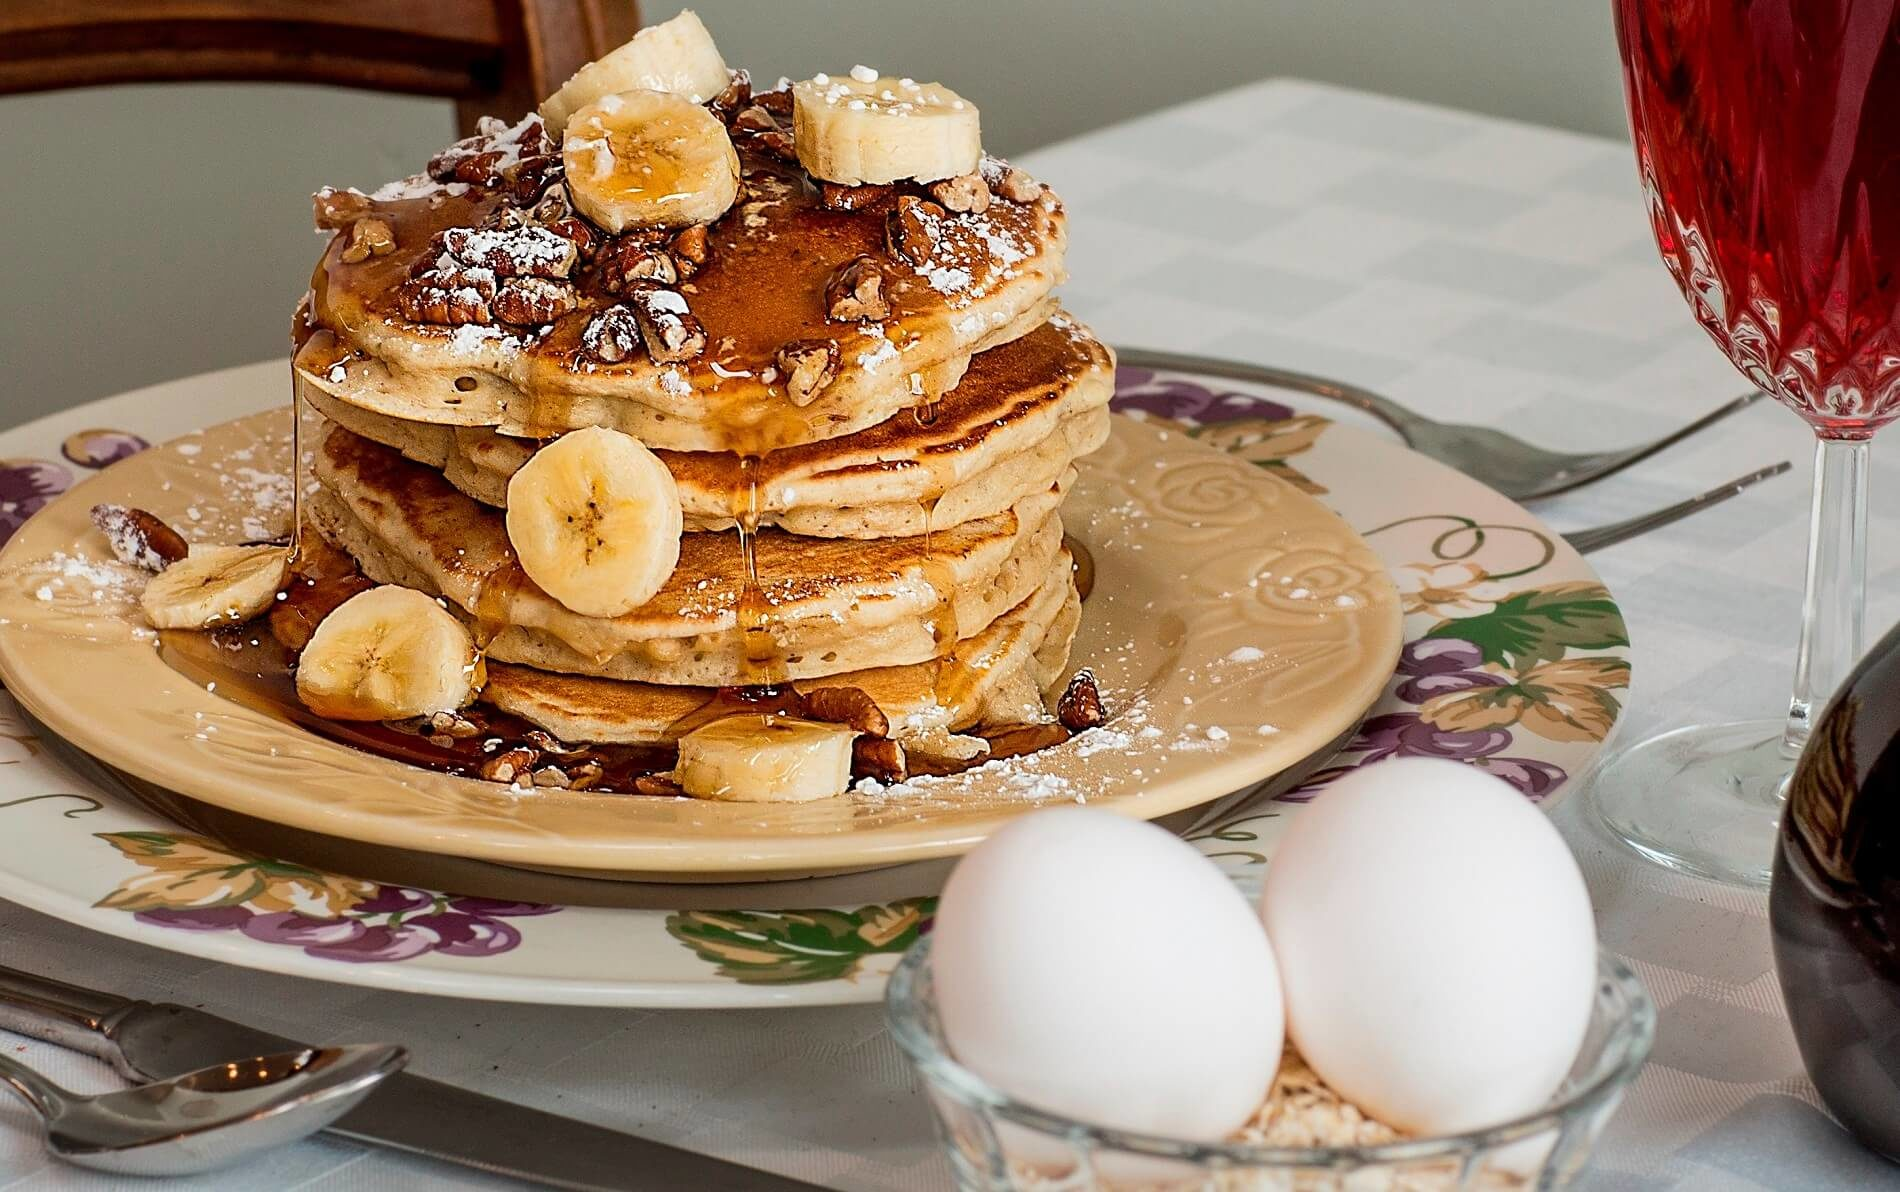 Four pancakes topped with bananas, pecans and syrup